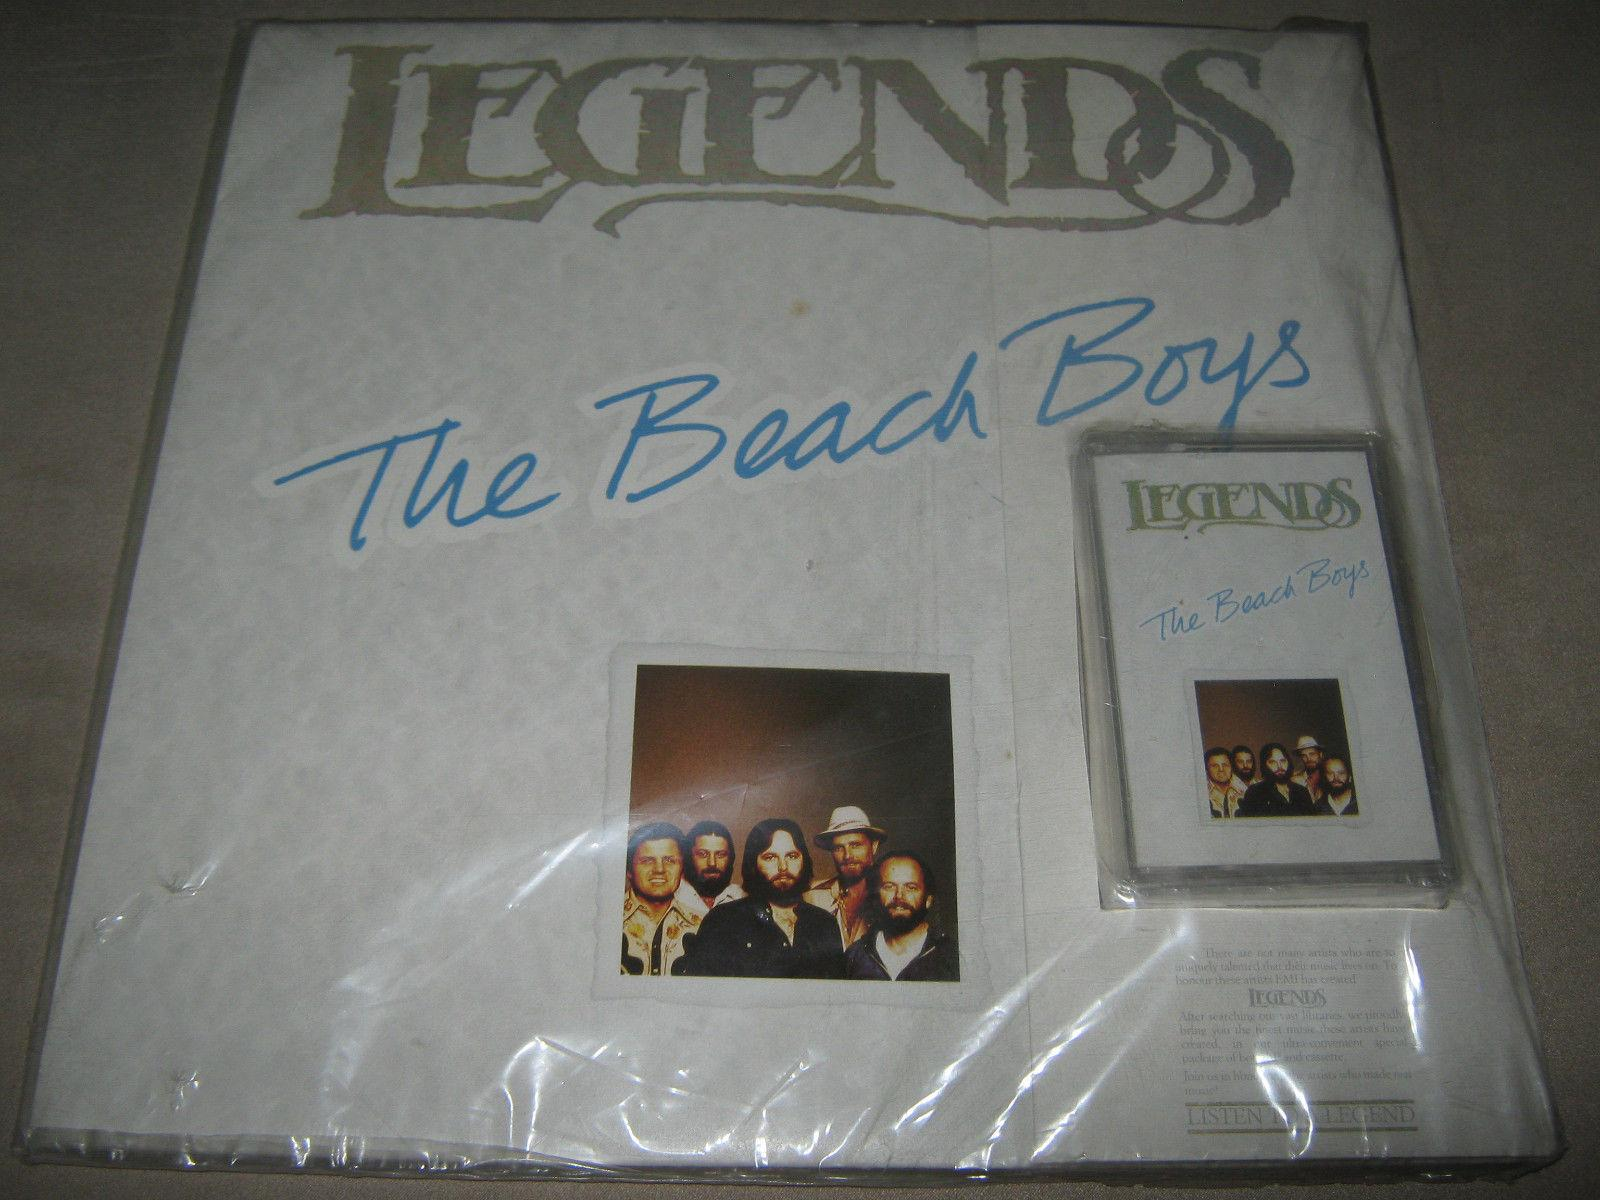 THE BEACH BOYS Legends SEALED NEW Vinyl LP & CASSETTE South Africa Greatest Hits